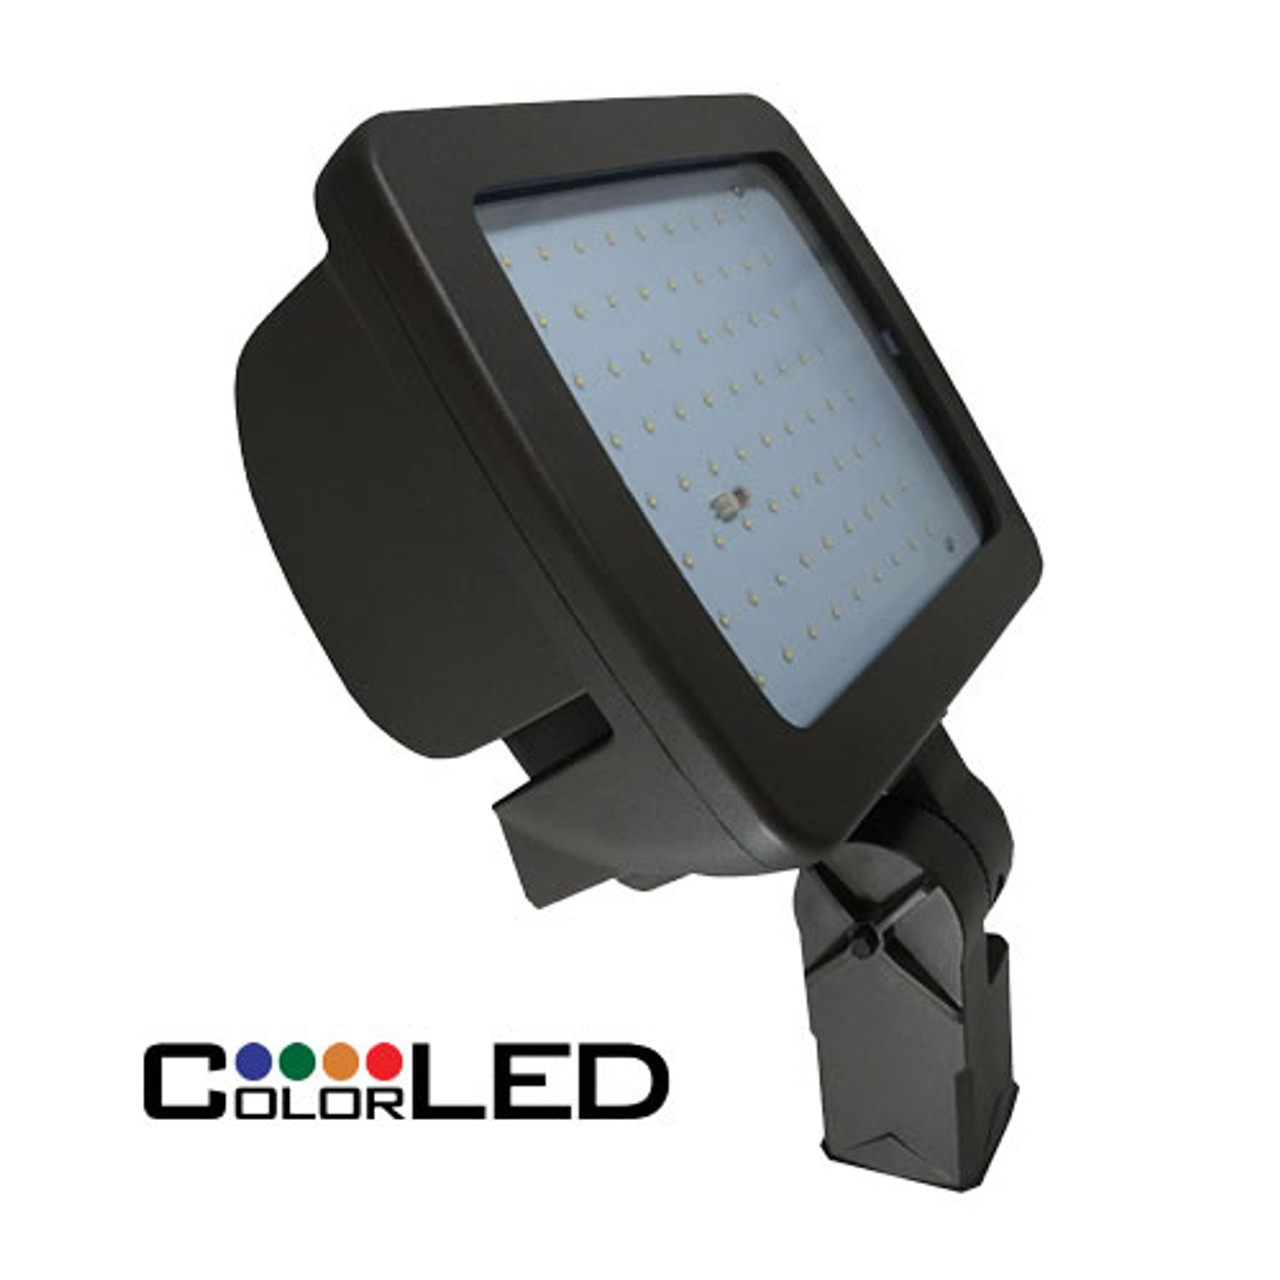 78 Watt Colored LED Area Light